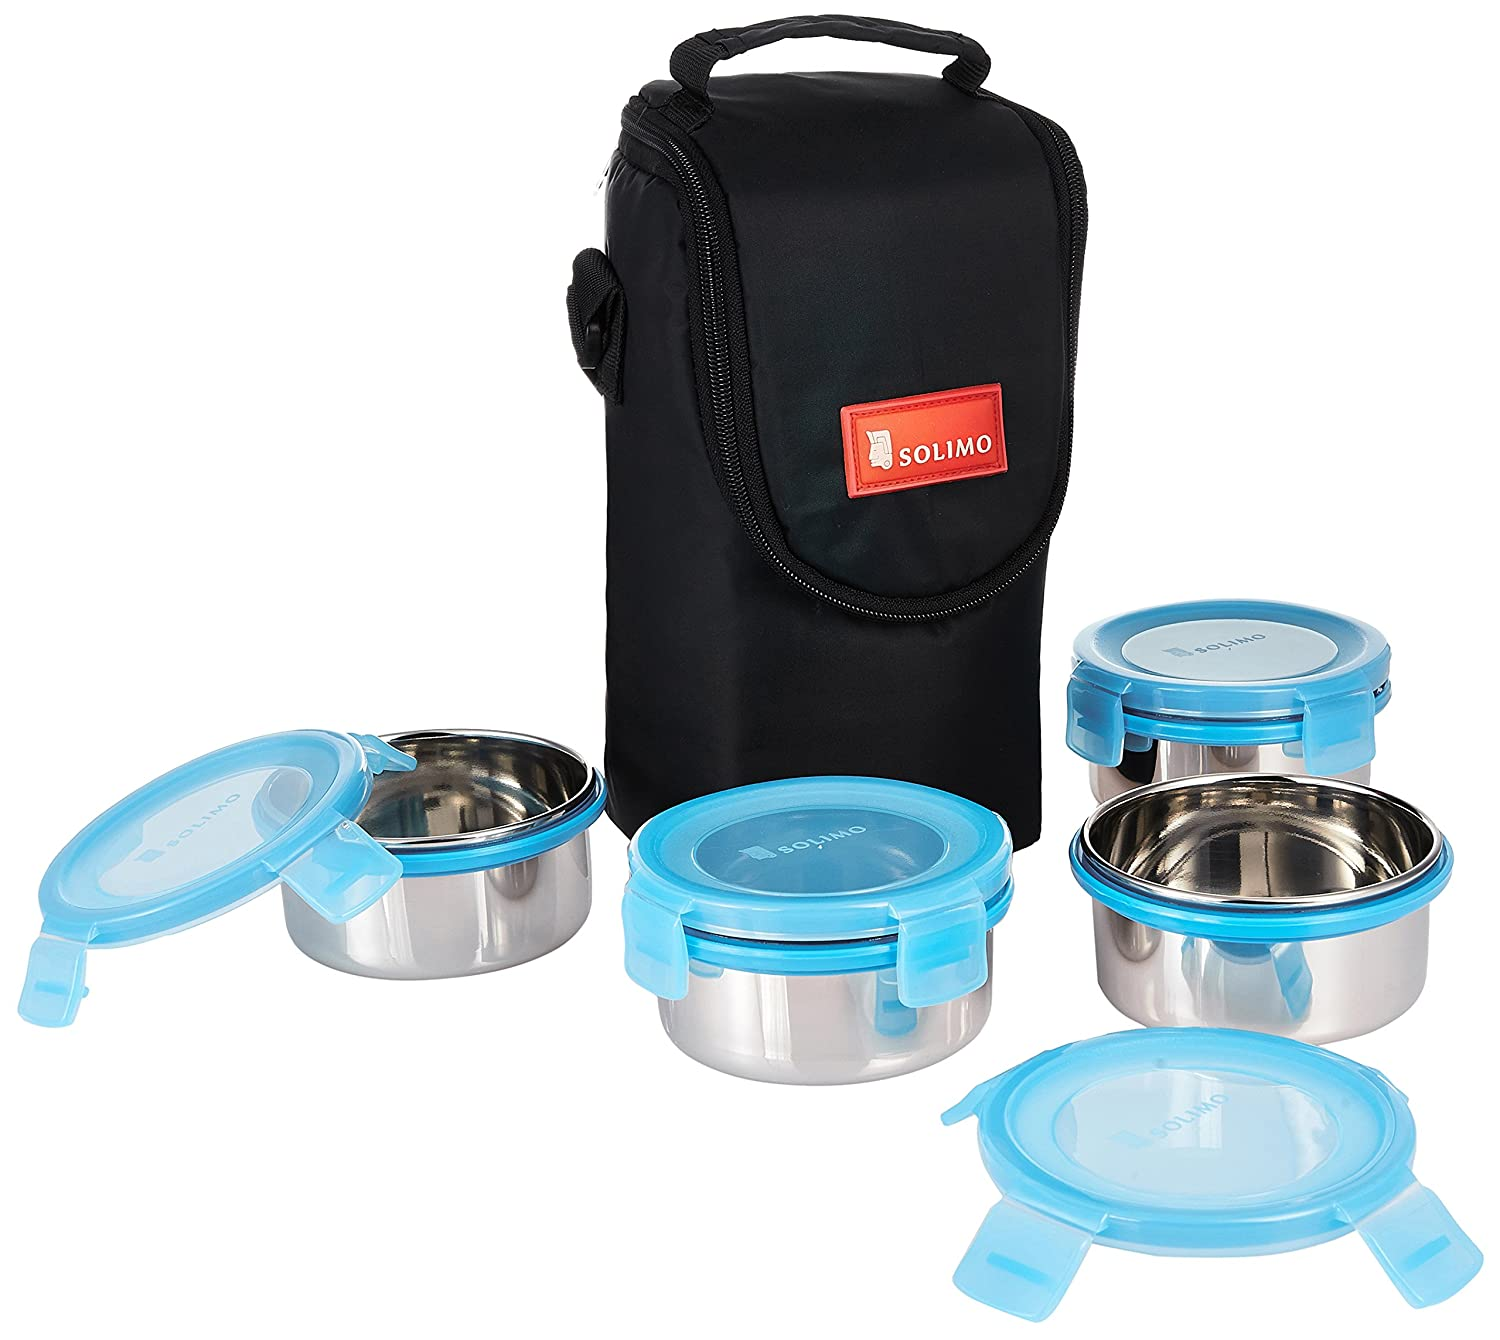 Solimo Stainless Steel Lunch Box Set, 4-Pieces, Blue Lid